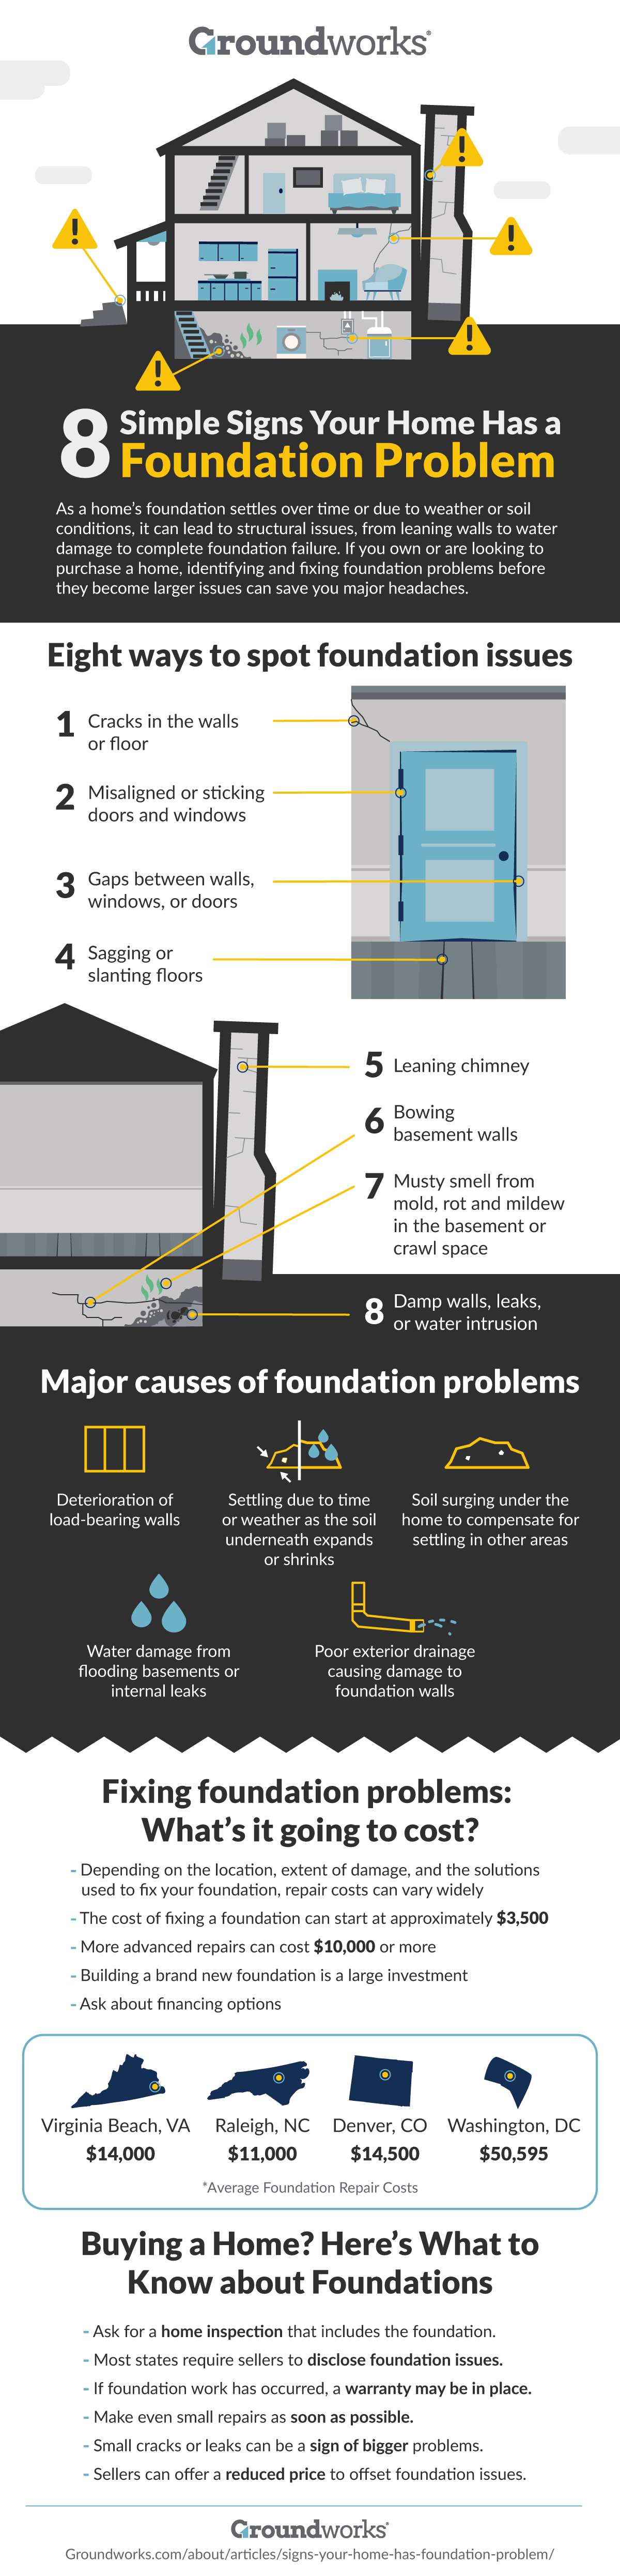 8 Simple Signs Your Home Has a Foundation Problem